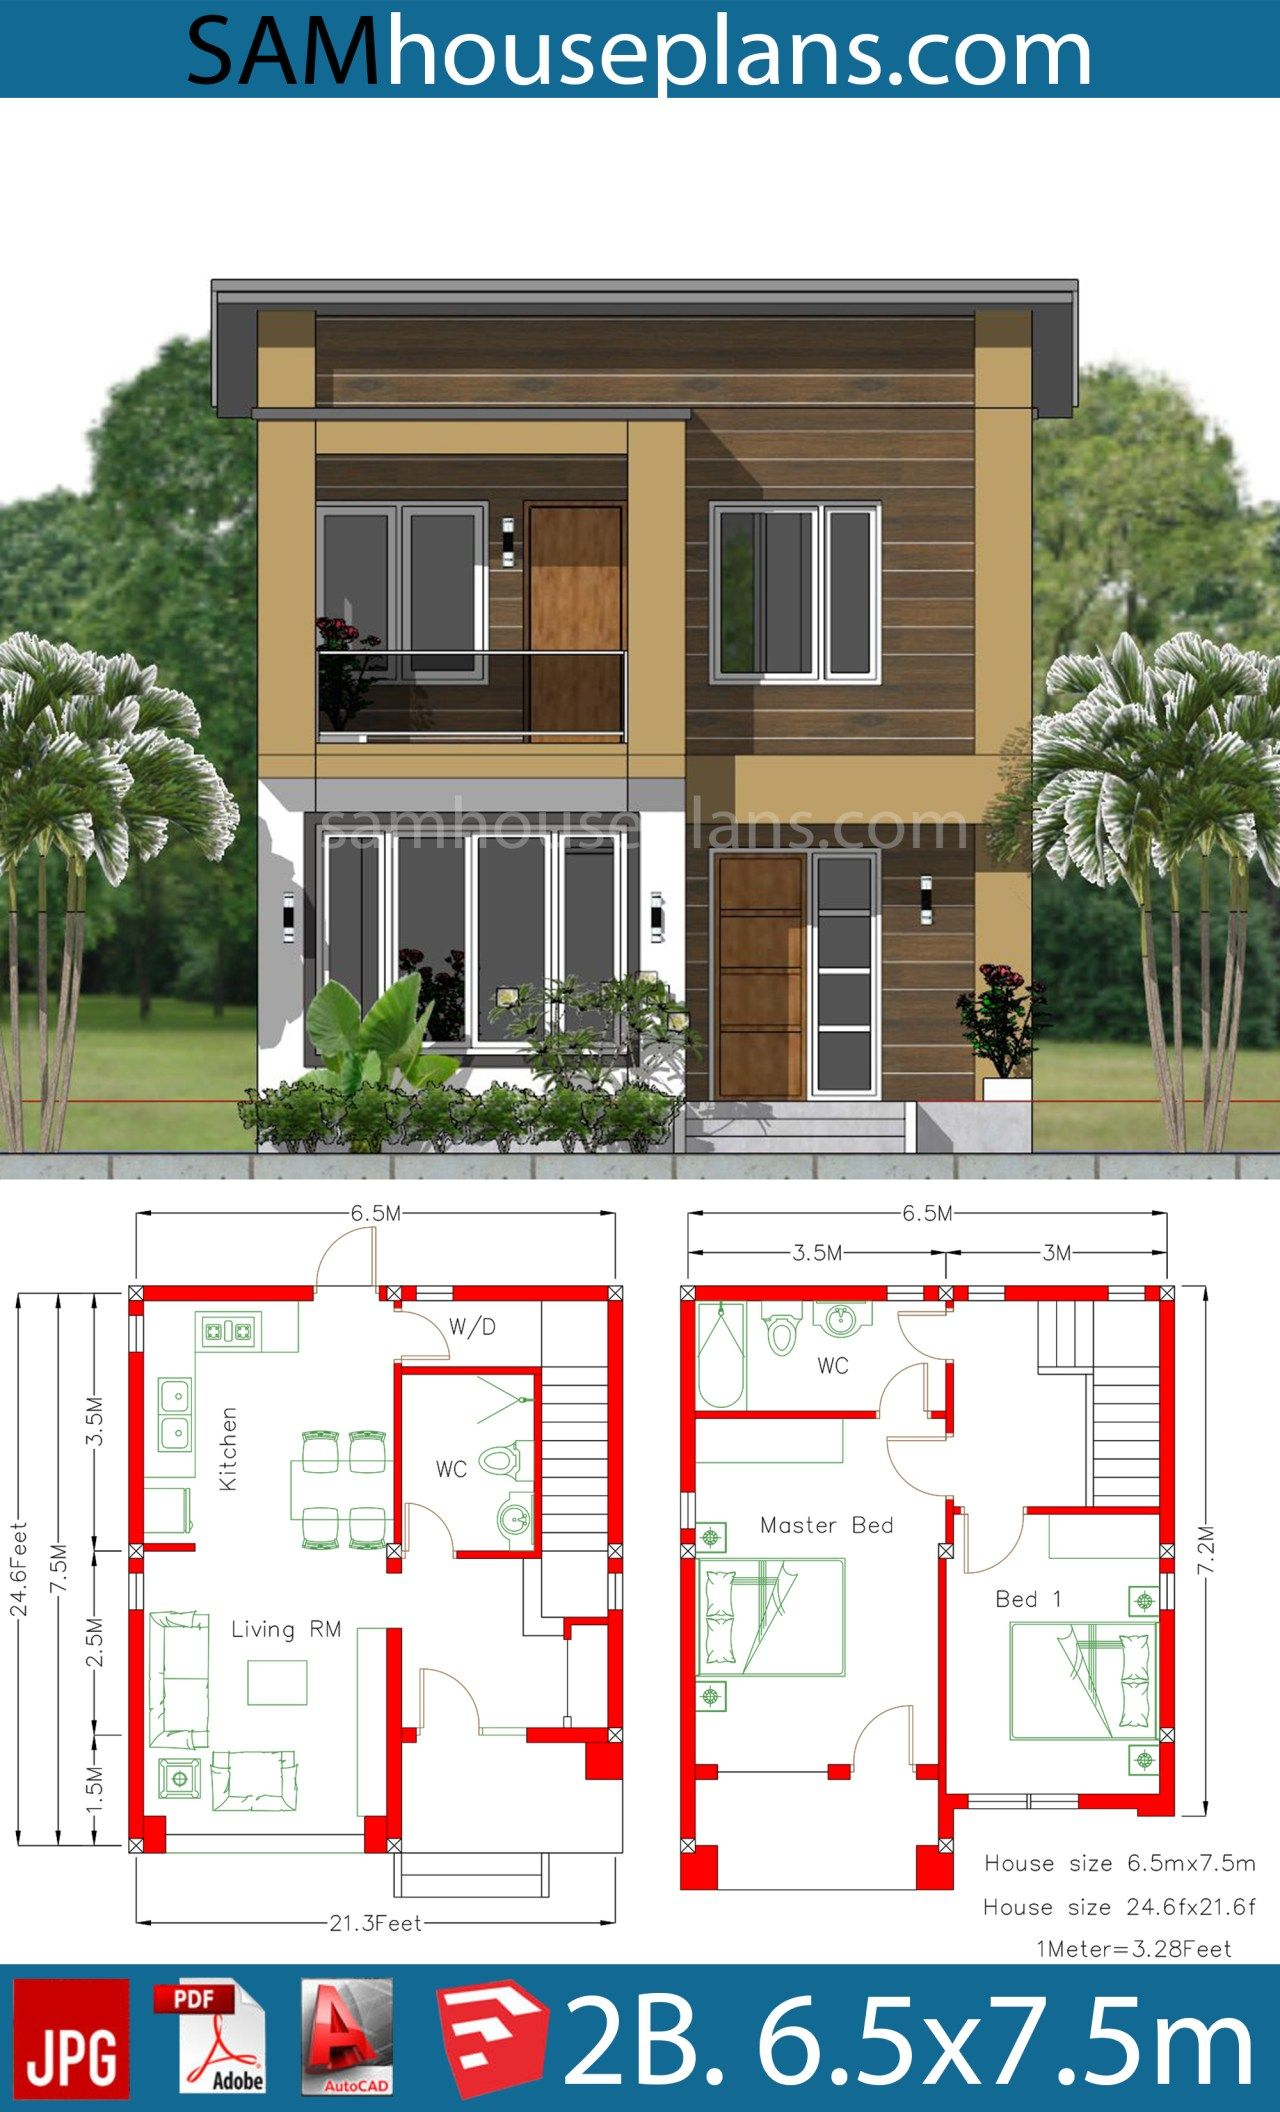 House Plan 6 5x7 5m With 2 Bedrooms A2 Sam House Plans Model House Plan Duplex House Plans Small Modern House Plans